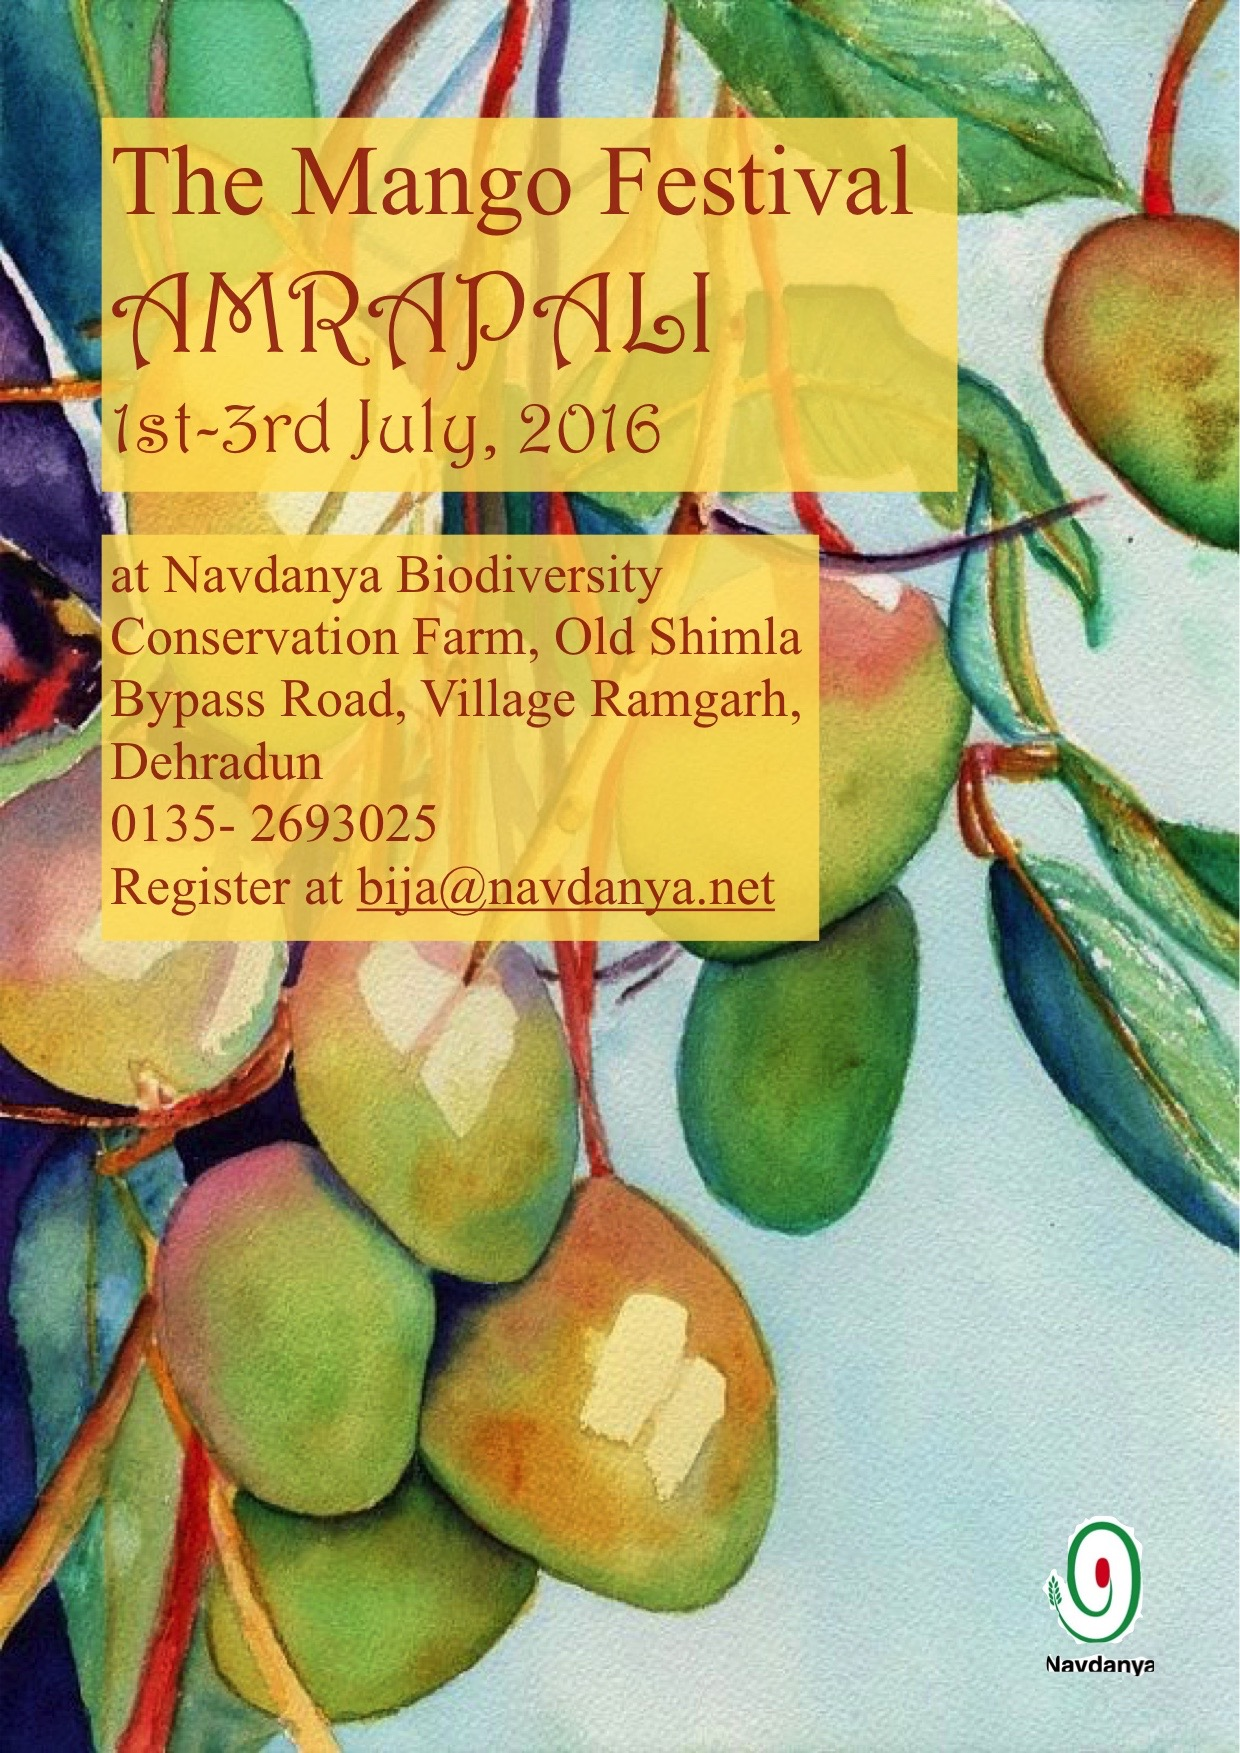 The Mango Festival - AMRAPALI